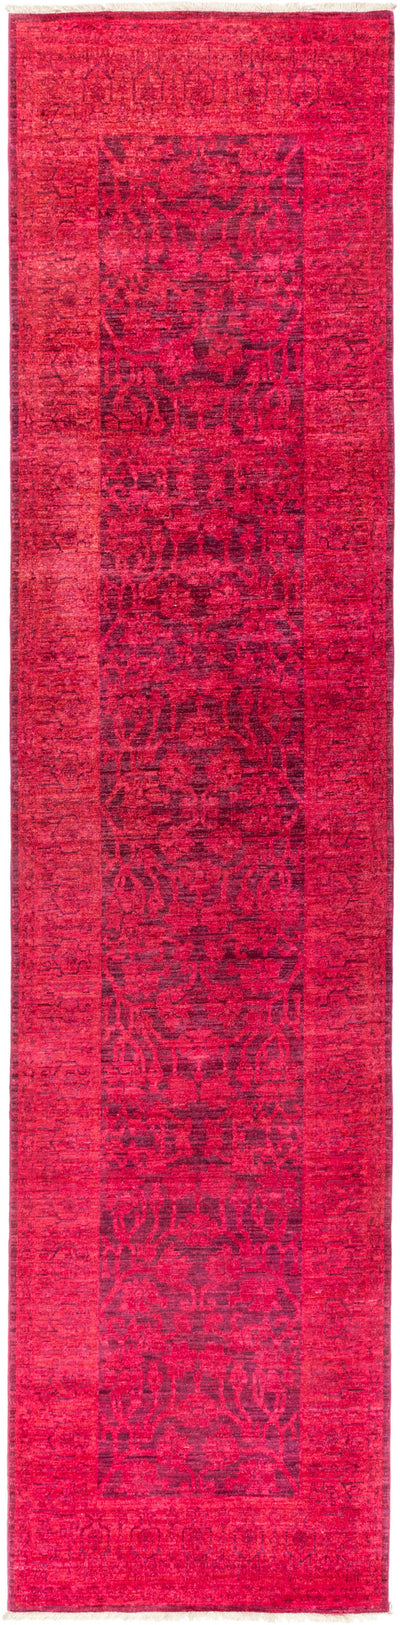 "Overdyed, Pink Wool Runner - 3' 2"" x 13' 10"""